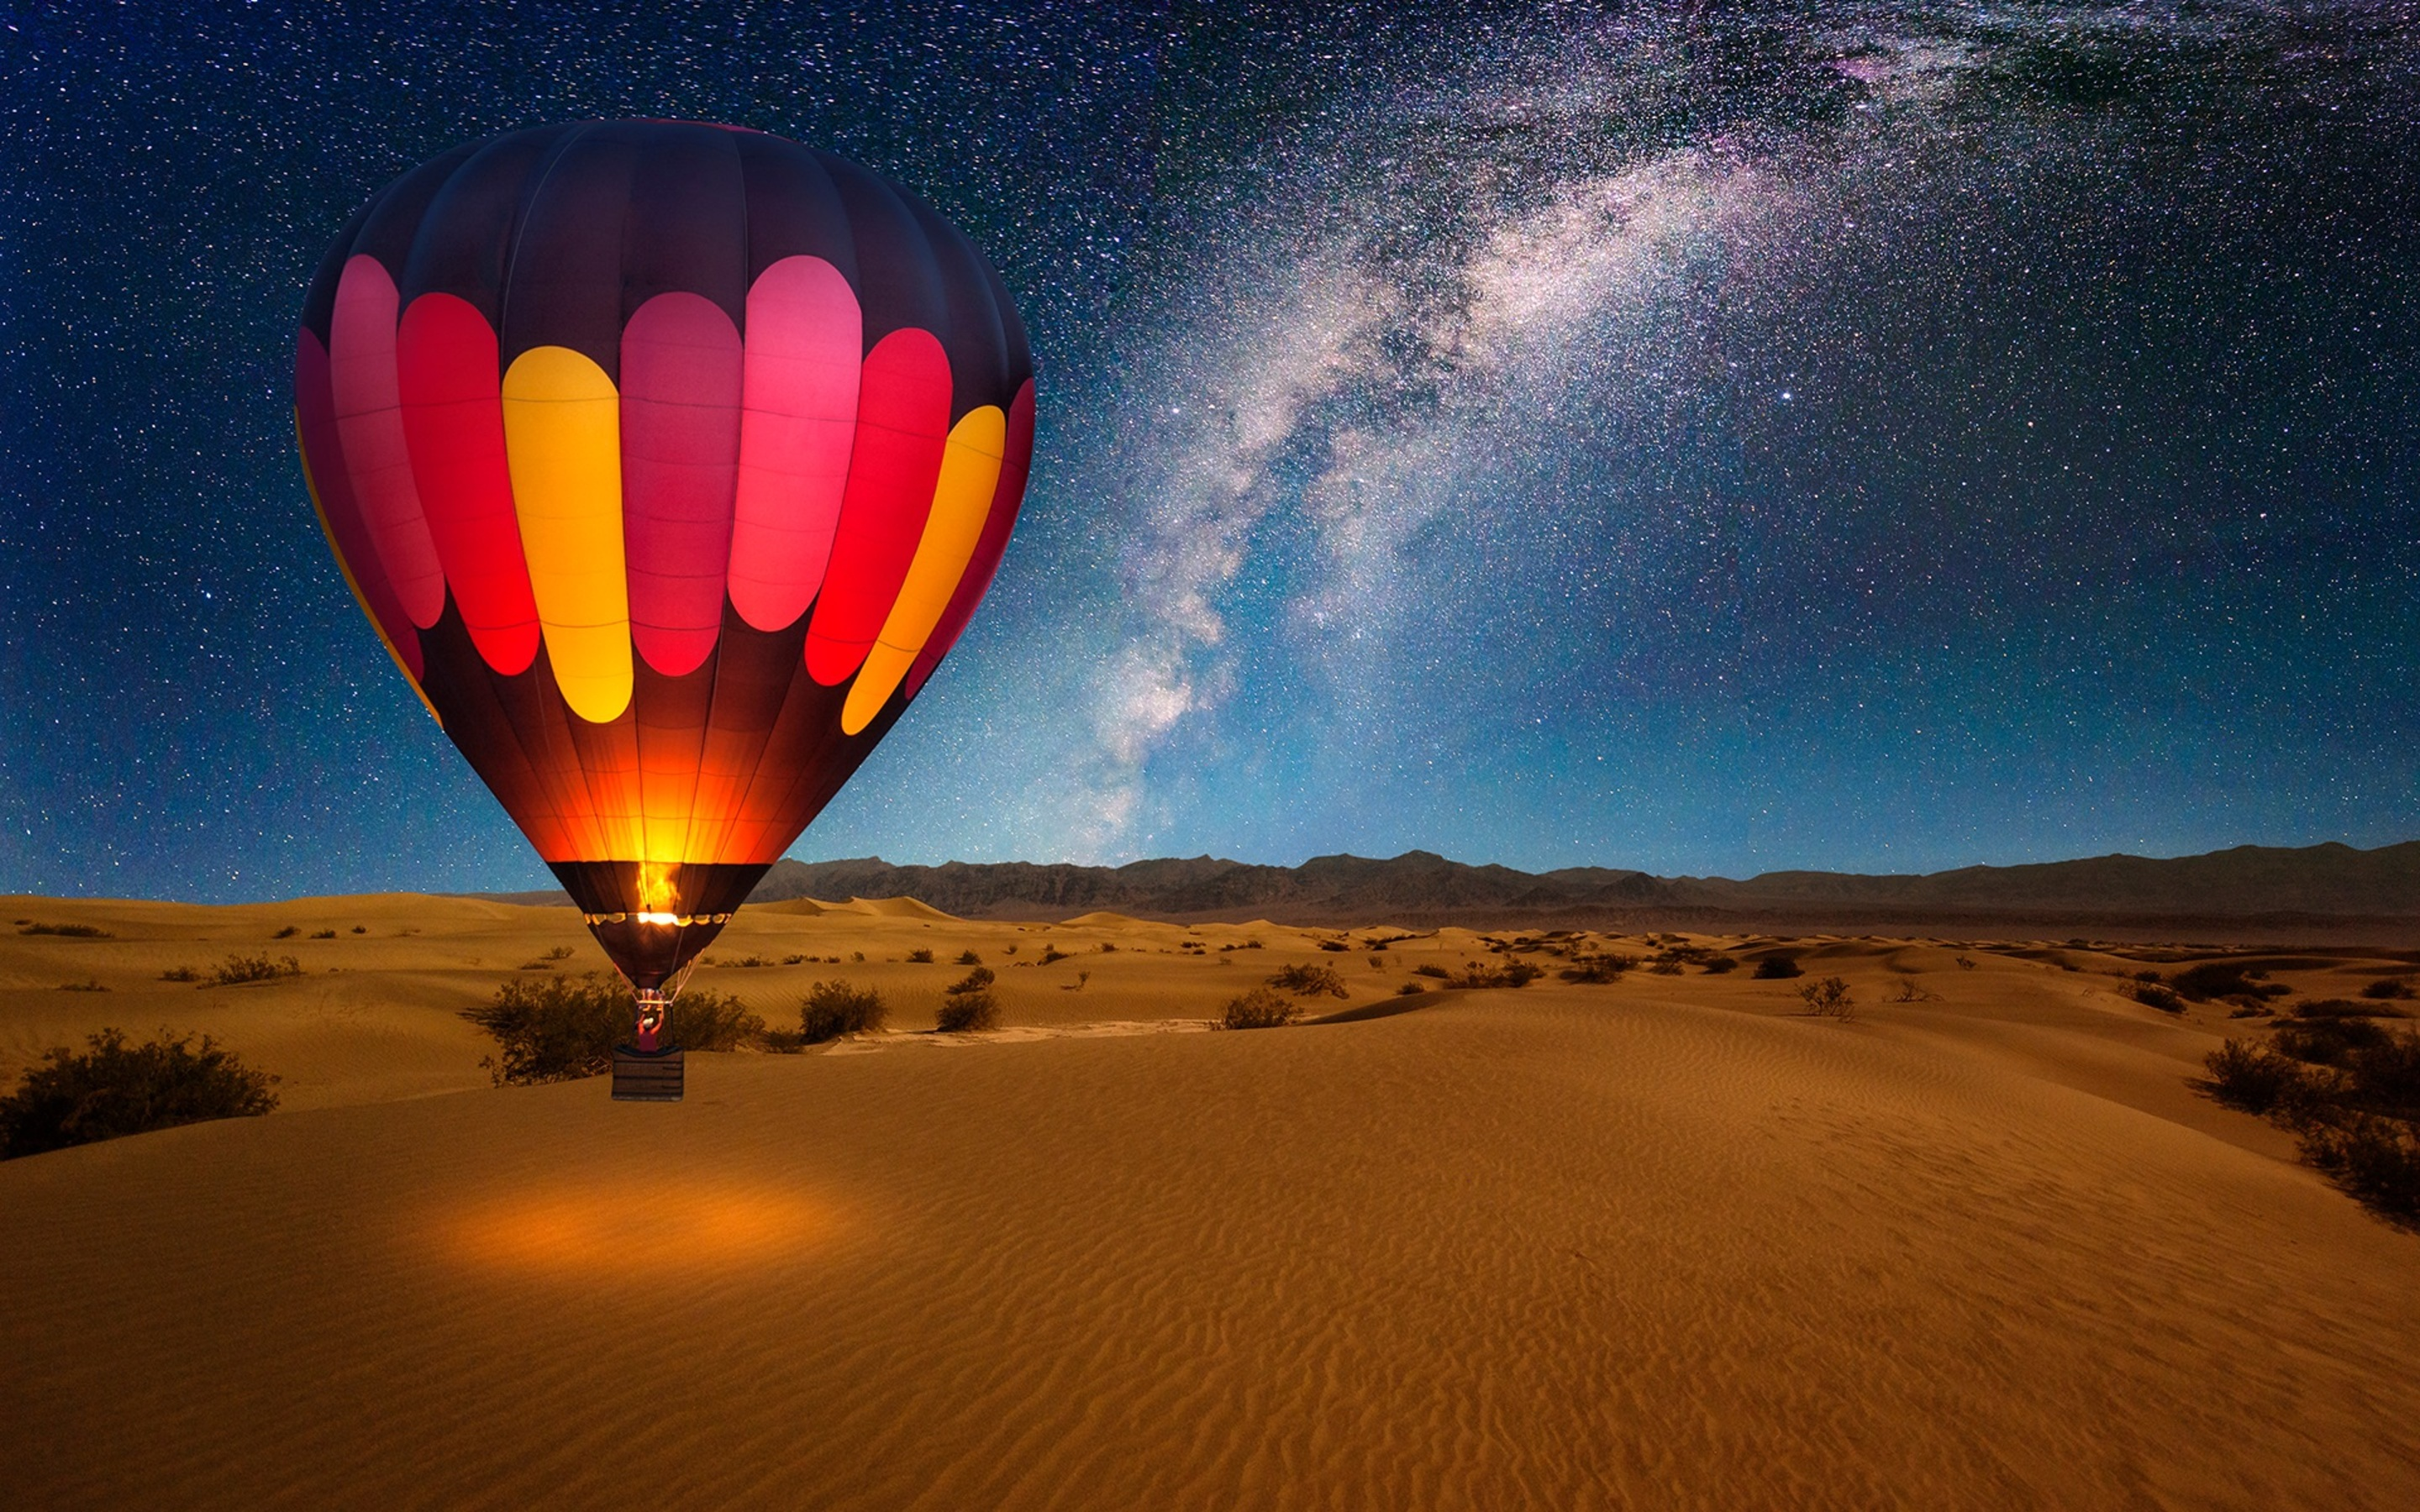 2880x1800 Hot Air Balloon On Desert Night Macbook Pro Retina Hd 4k Wallpapers Images Backgrounds Photos And Pictures